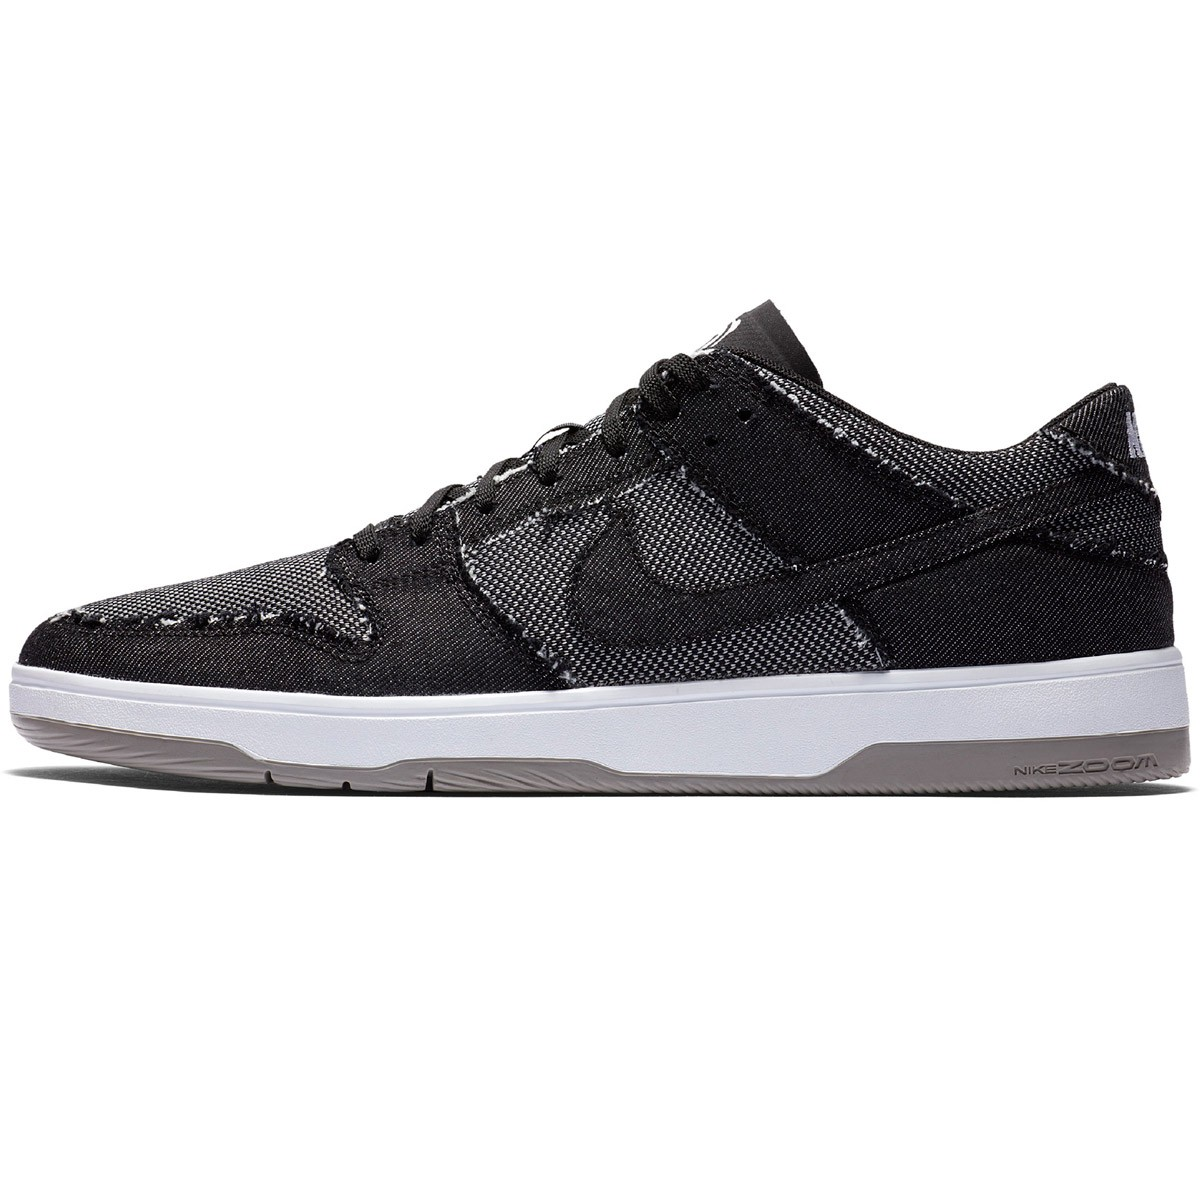 2064c2204c270 Nike SB X Medicom Zoom Dunk Low Elite QS Shoes - Black Black White